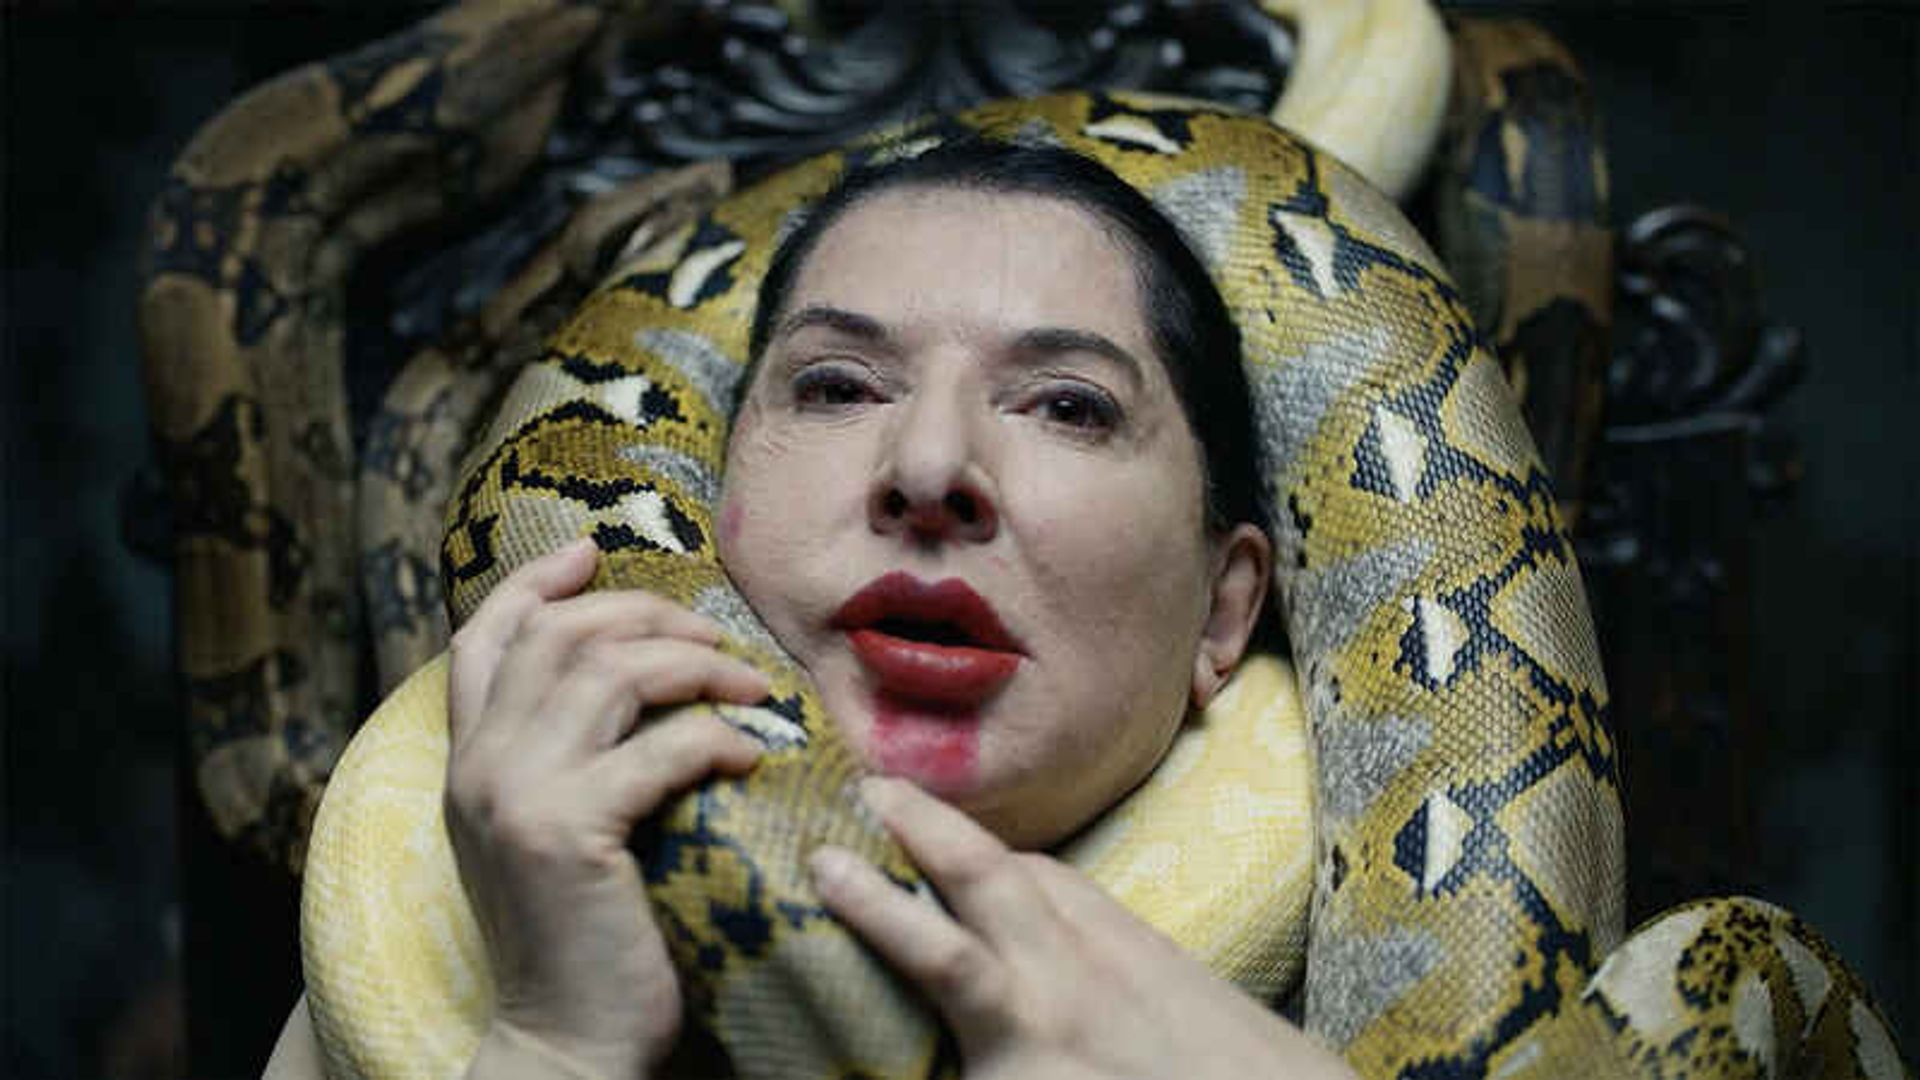 Still from Marina Abramovic's Seven Deaths (2021) Courtesy of the artist and Lisson Gallery